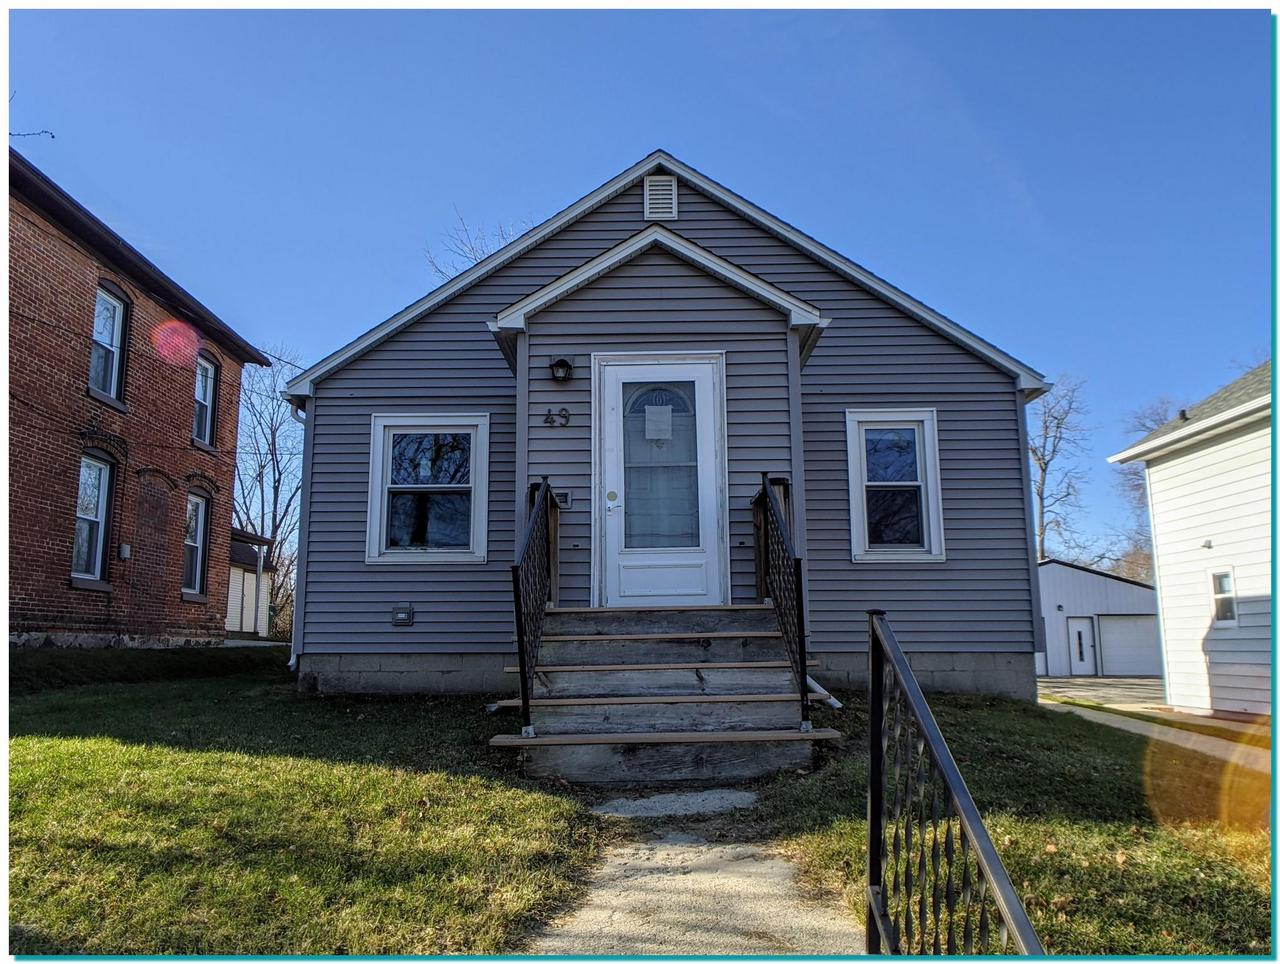 Low maintenance ranch style home. Could be a great starter home or income property. Home has 2 bedrooms and 1 full bath with a nice attic area for storage. Full basement and rear deck with dog run in the back. Extra deep lot with room for a possible garage addition.